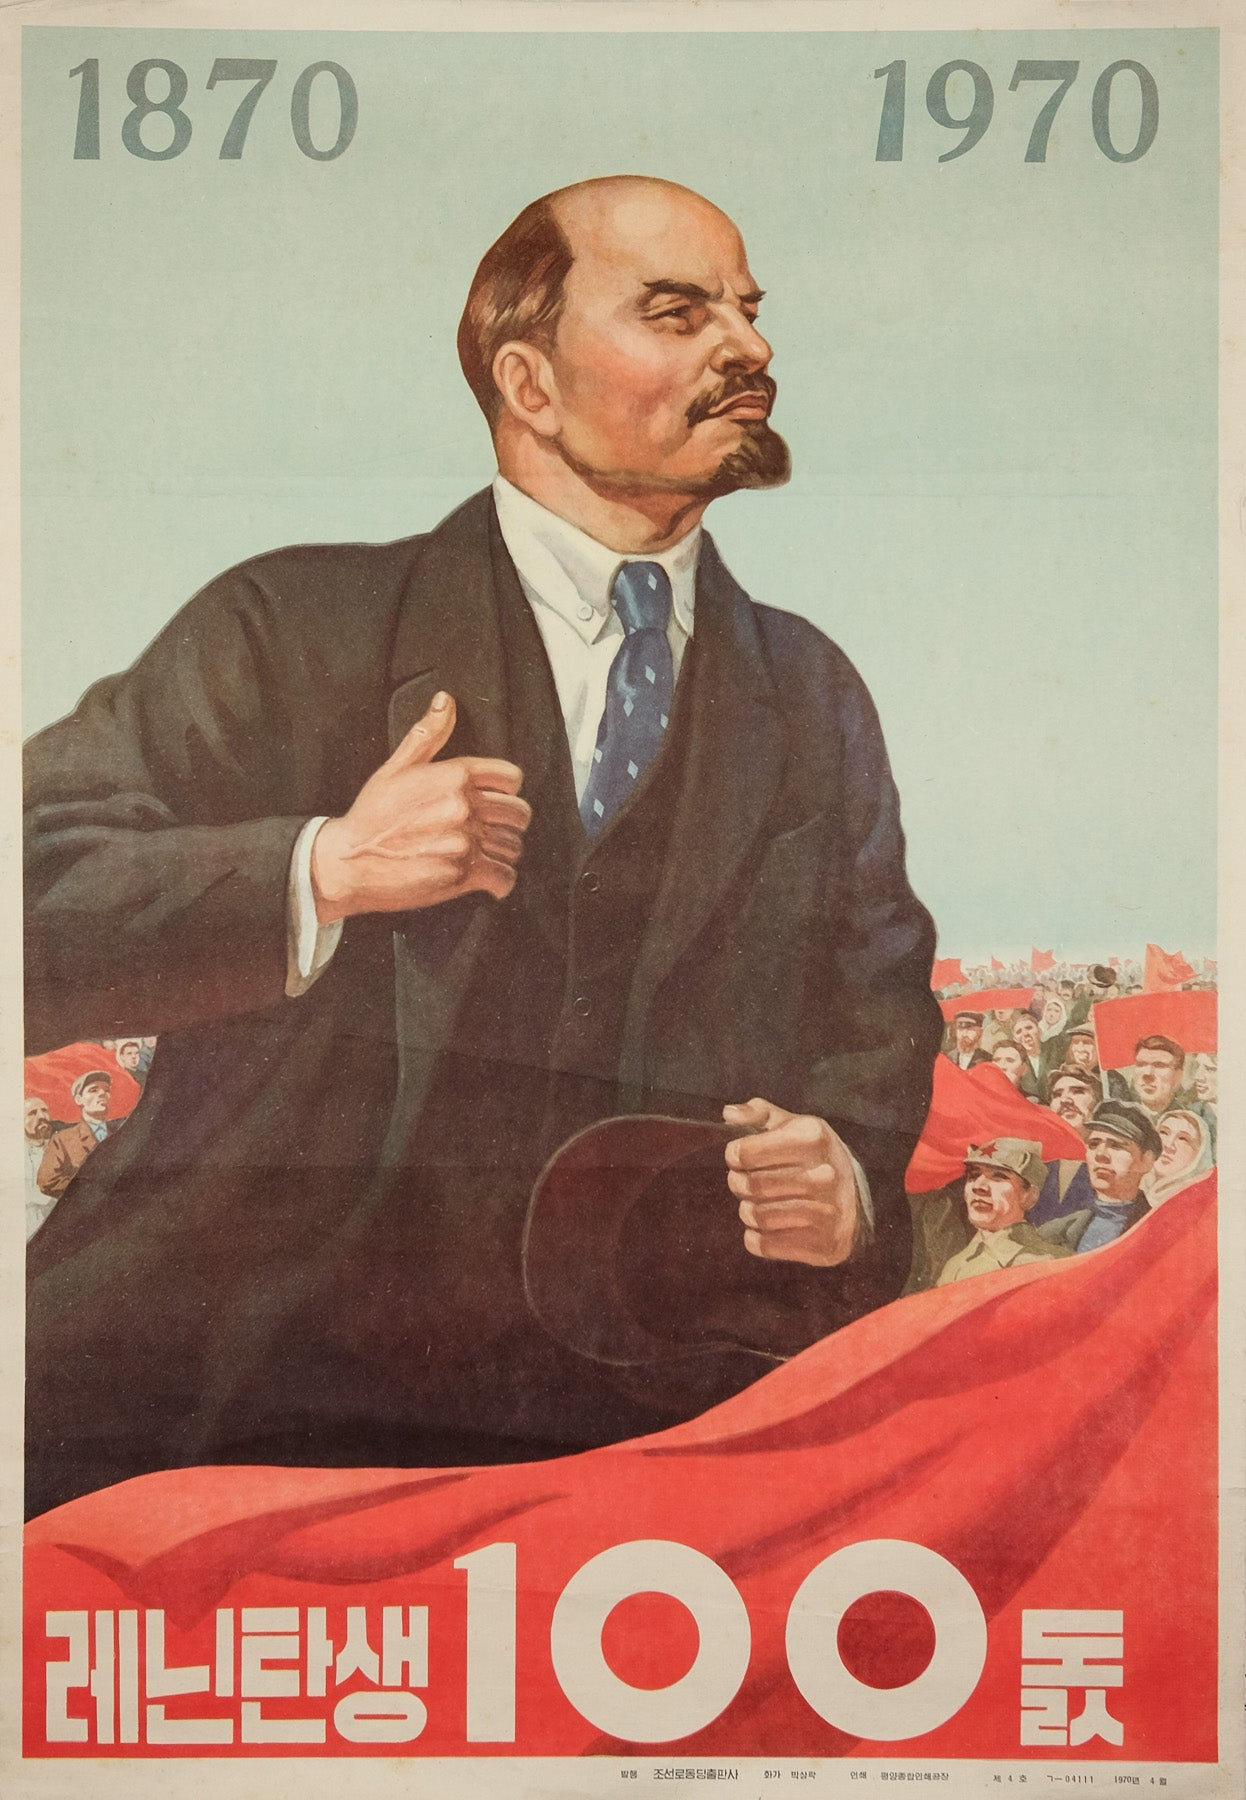 image of 1970 vintage original North Korean communist propaganda poster titled 100th anniversary of the birth of V.I.Lenin by Park Sang Lak published by DPRK Worker's Party Press